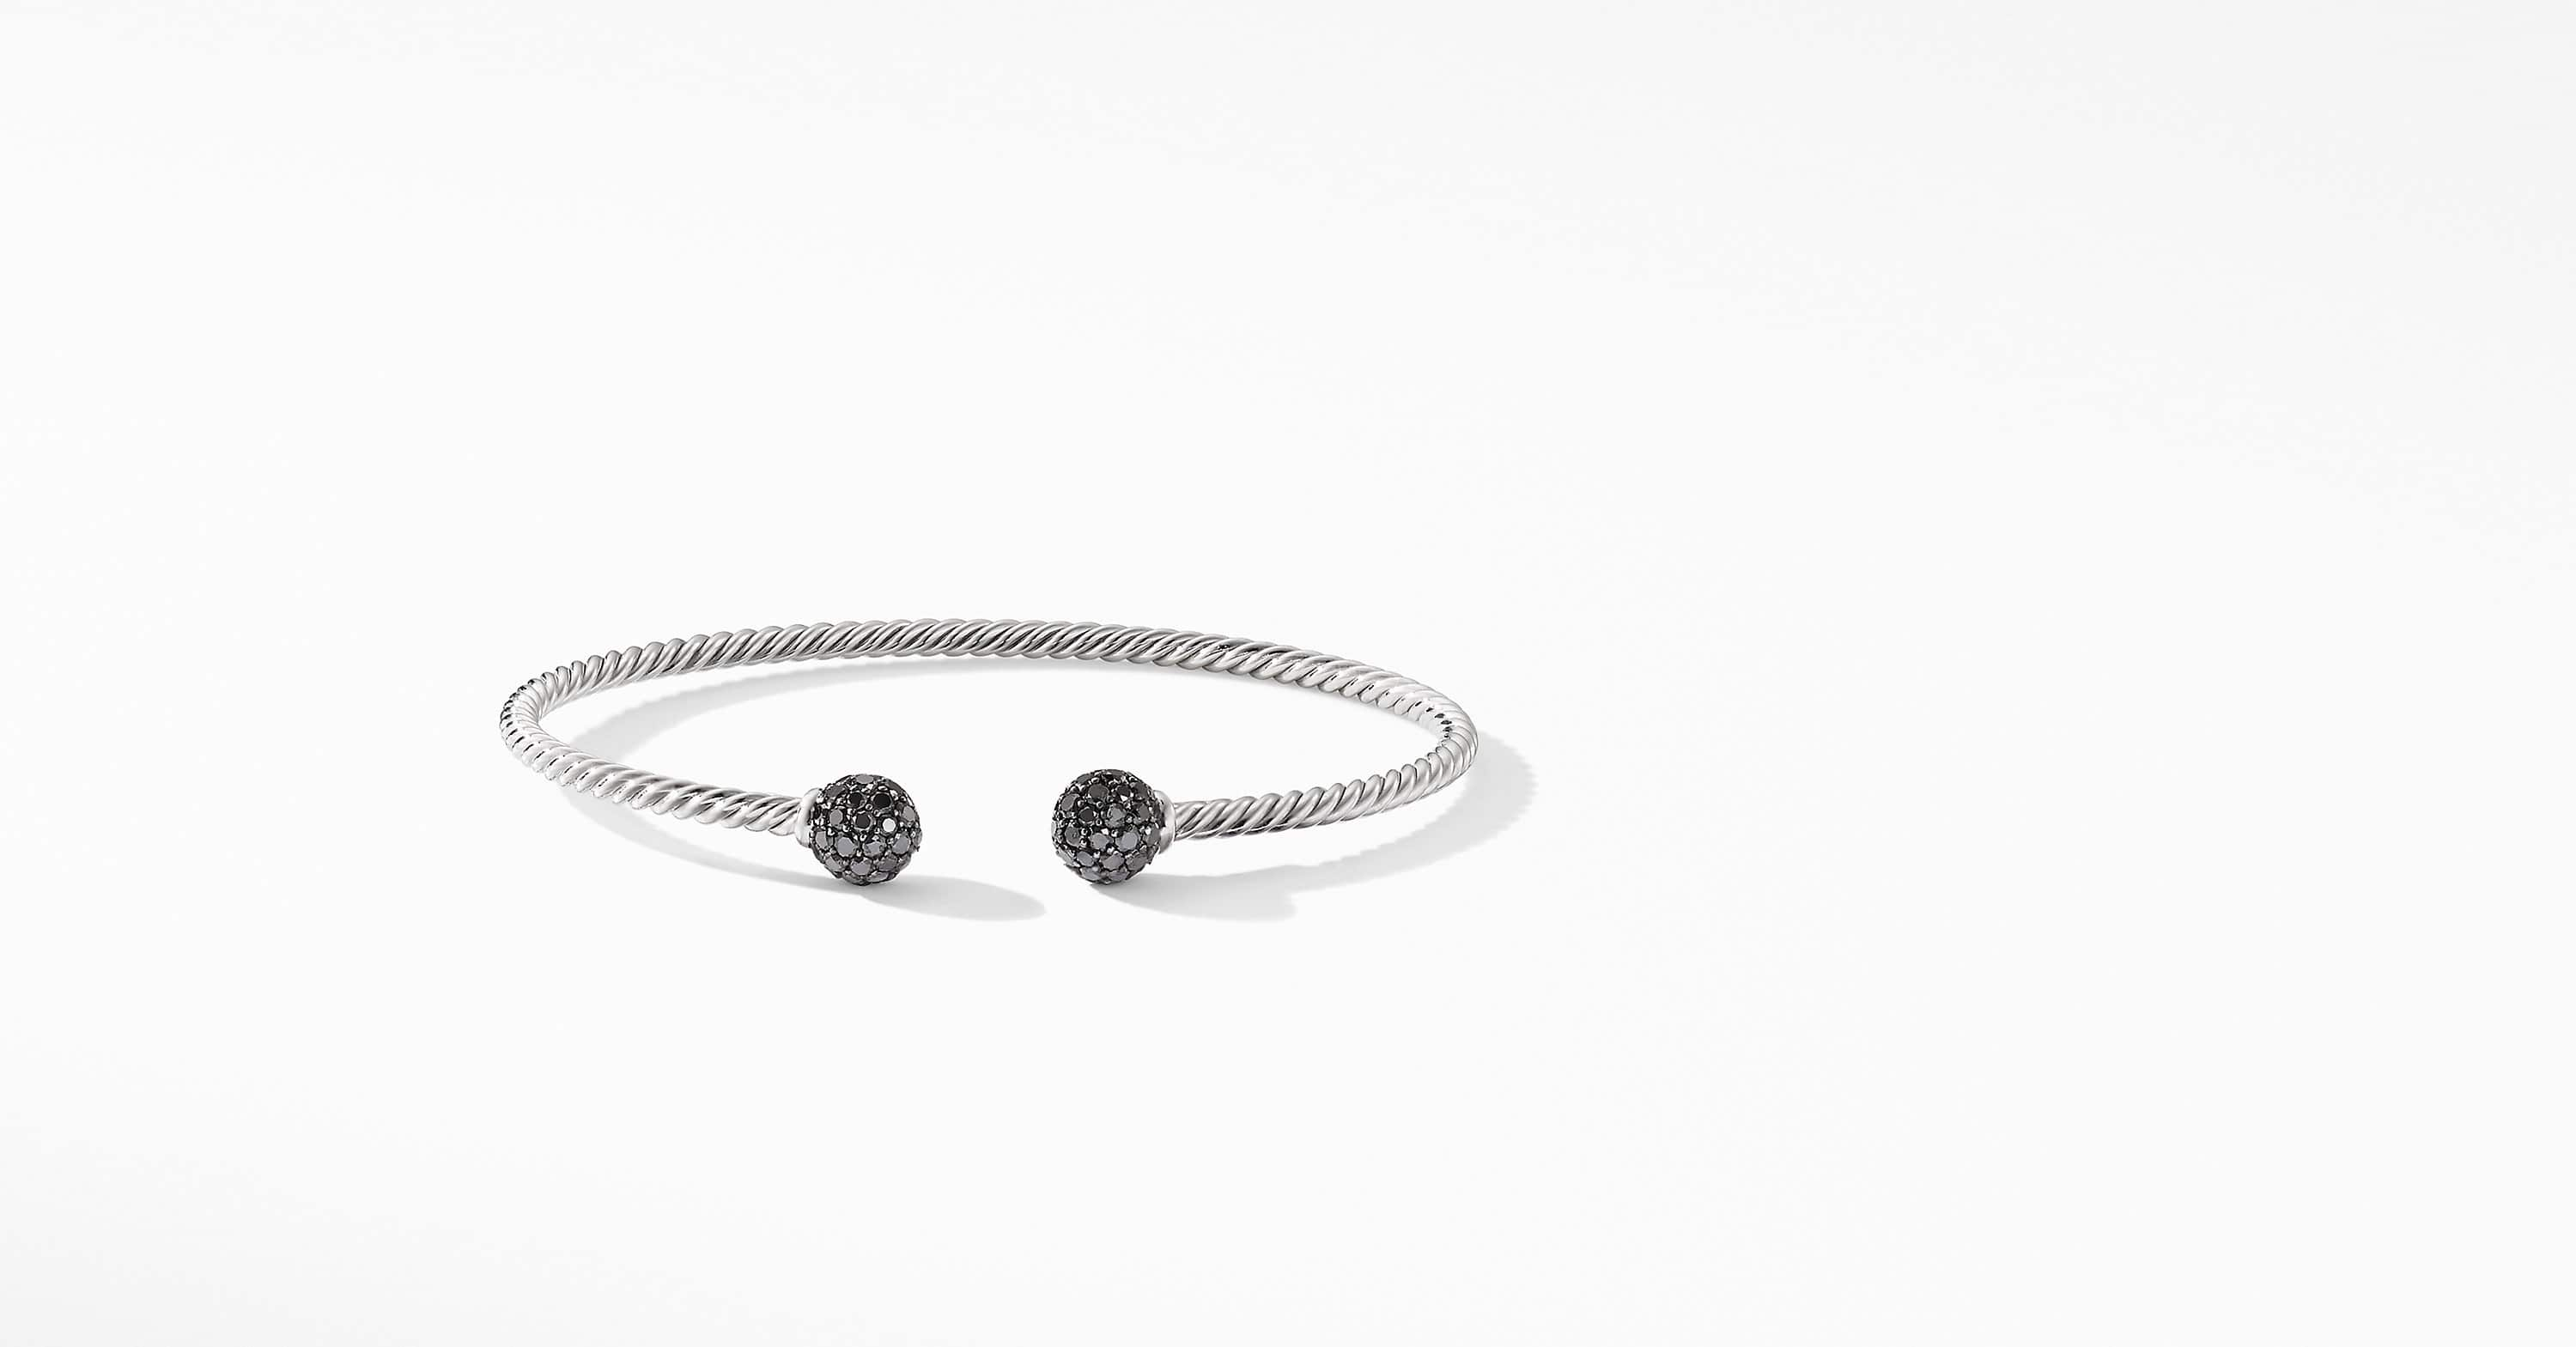 Solari Bracelet in 18K White Gold